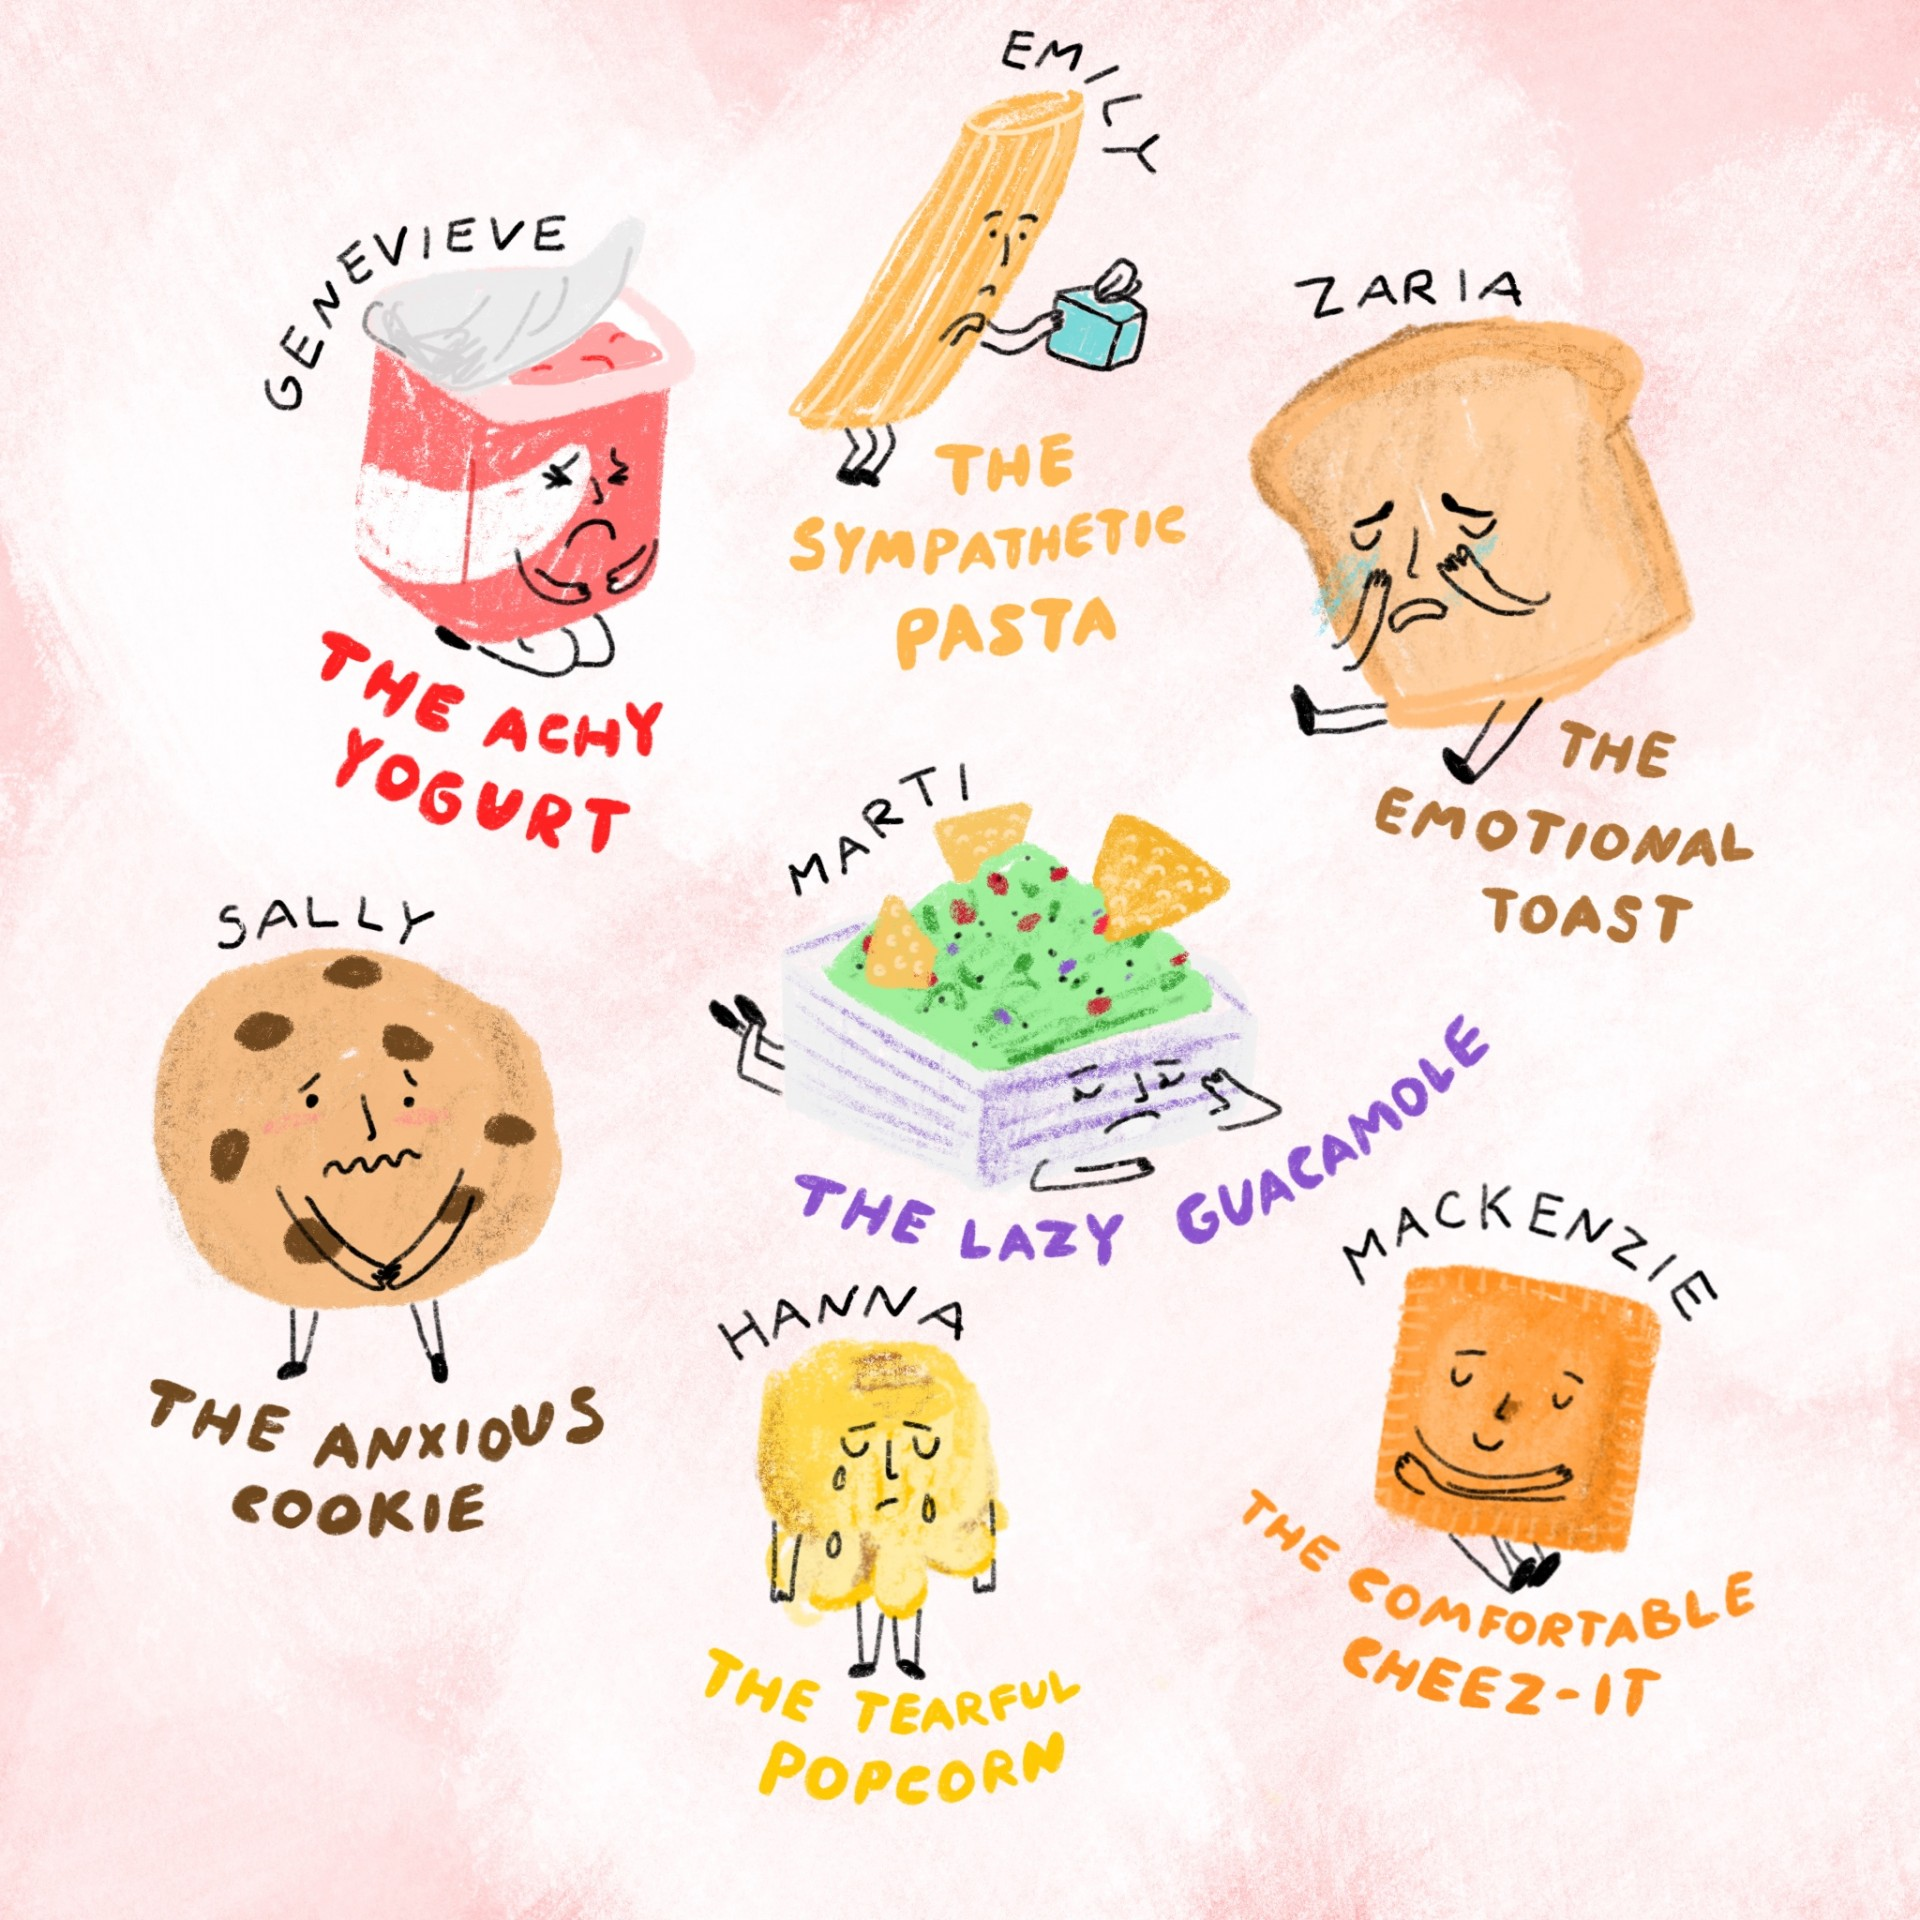 An assortment of drawings of emotional foods. Each drawing has a name and a description written underneath. Magenta background and illustrations are drawn in color.